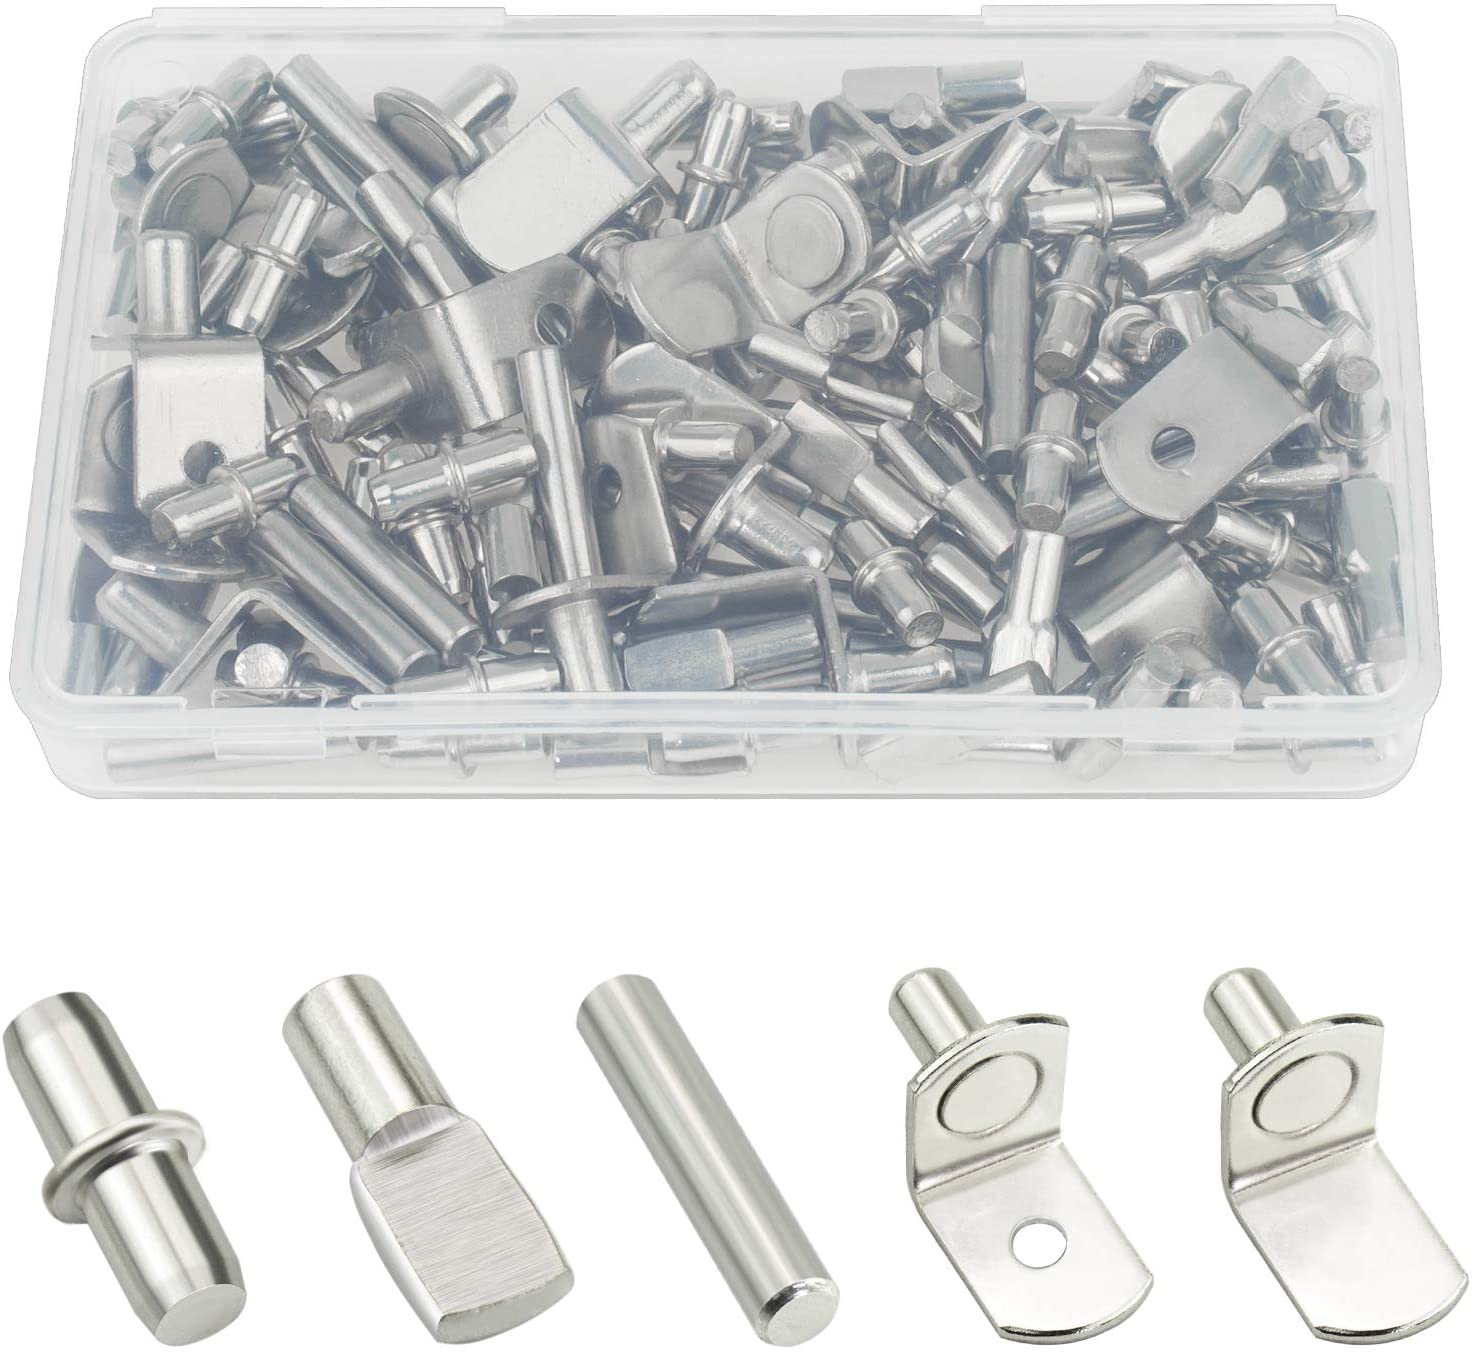 Sutemribor High quality new 85PCS Nickel Plated Recommendation Shelf Cabinet Pegs Bracket Furnit